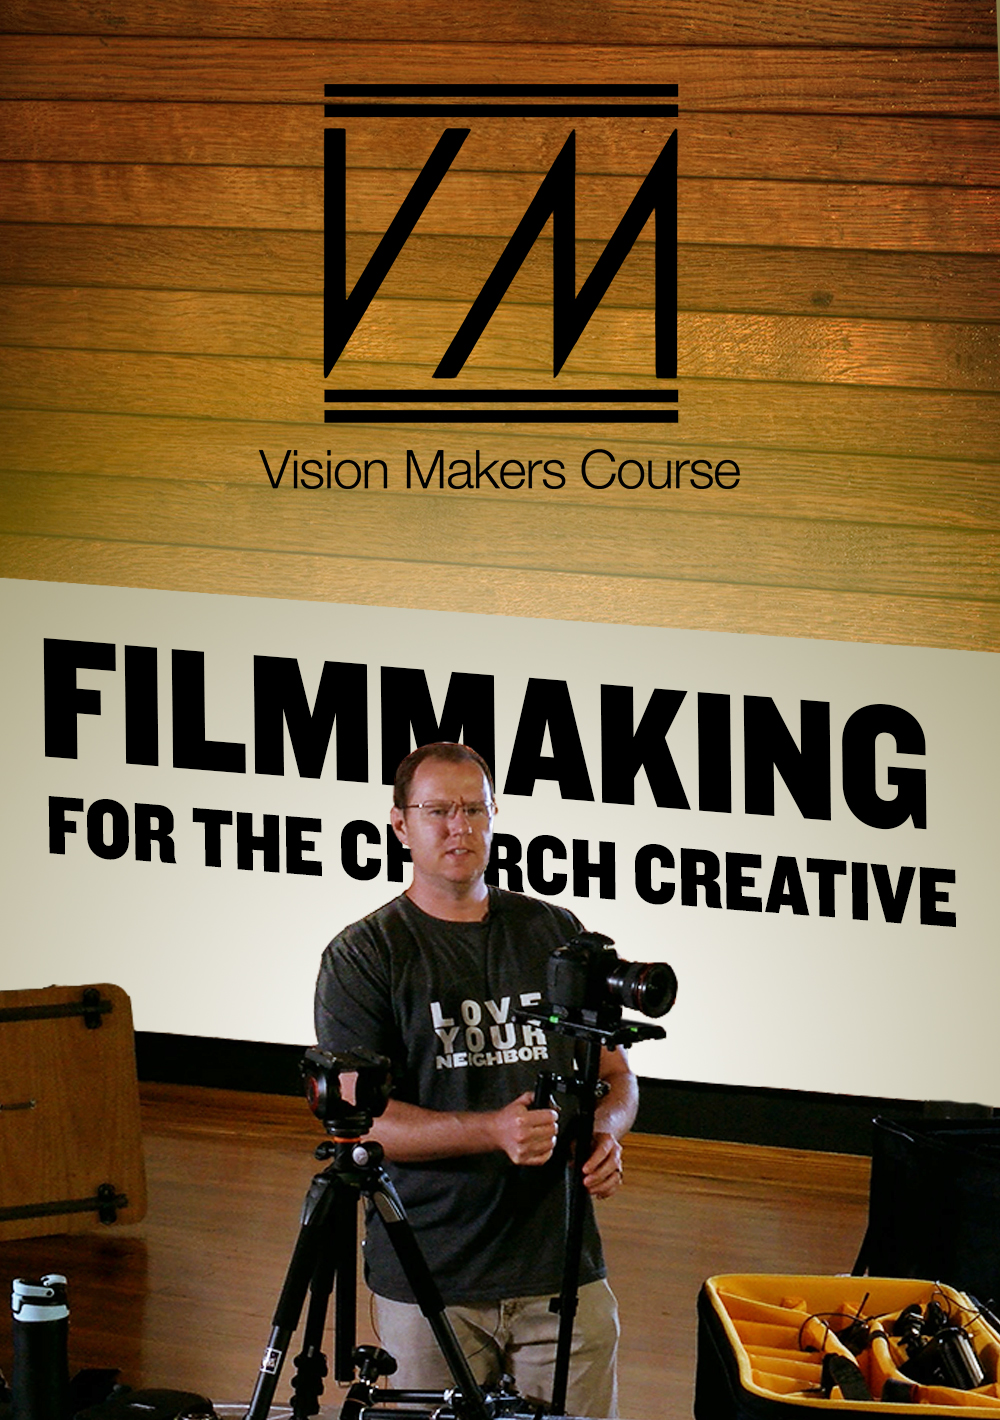 Vision Makers Poster 2.jpg